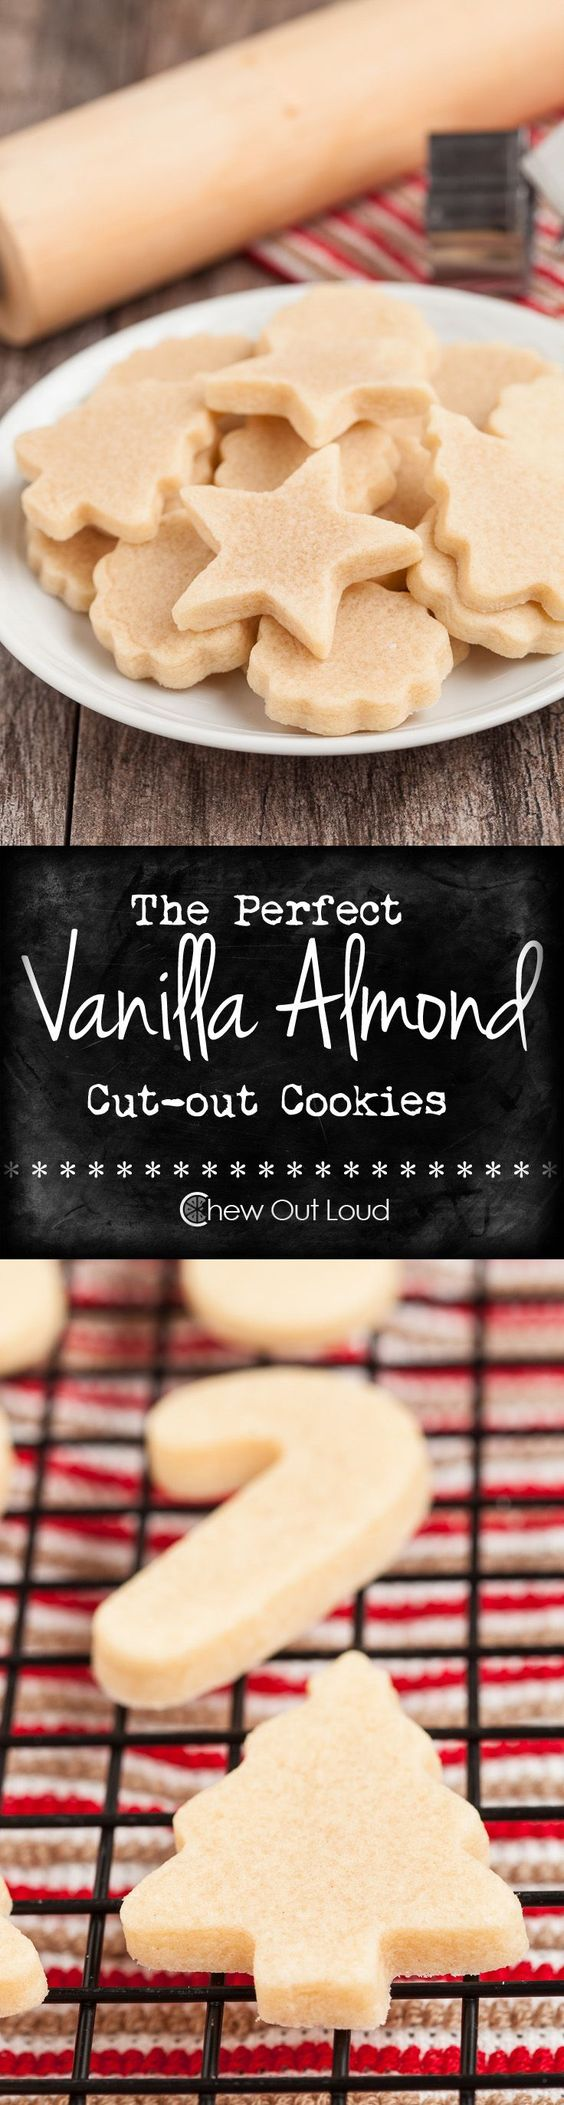 Biscuits aux amandes, Amandes and Vanille on Pinterest